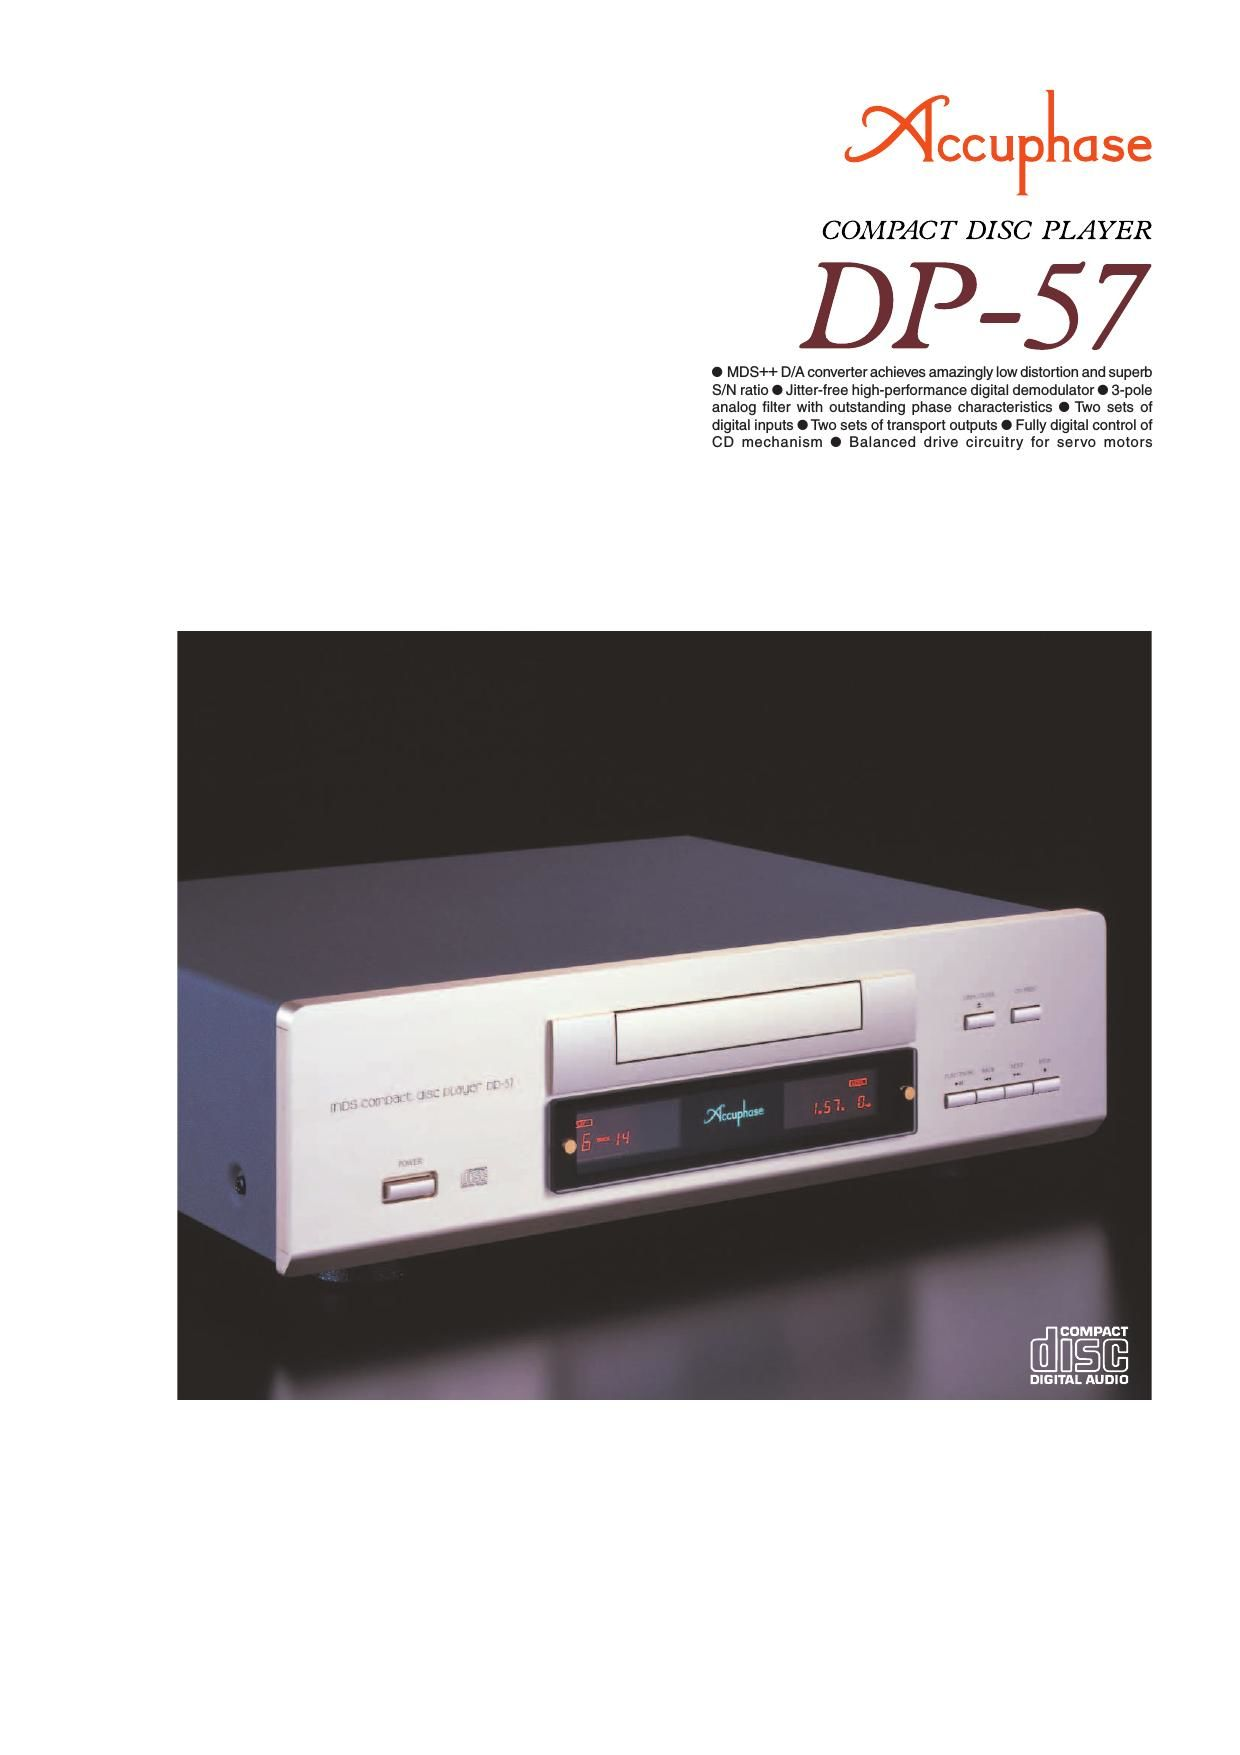 Accuphase DP 57 Brochure